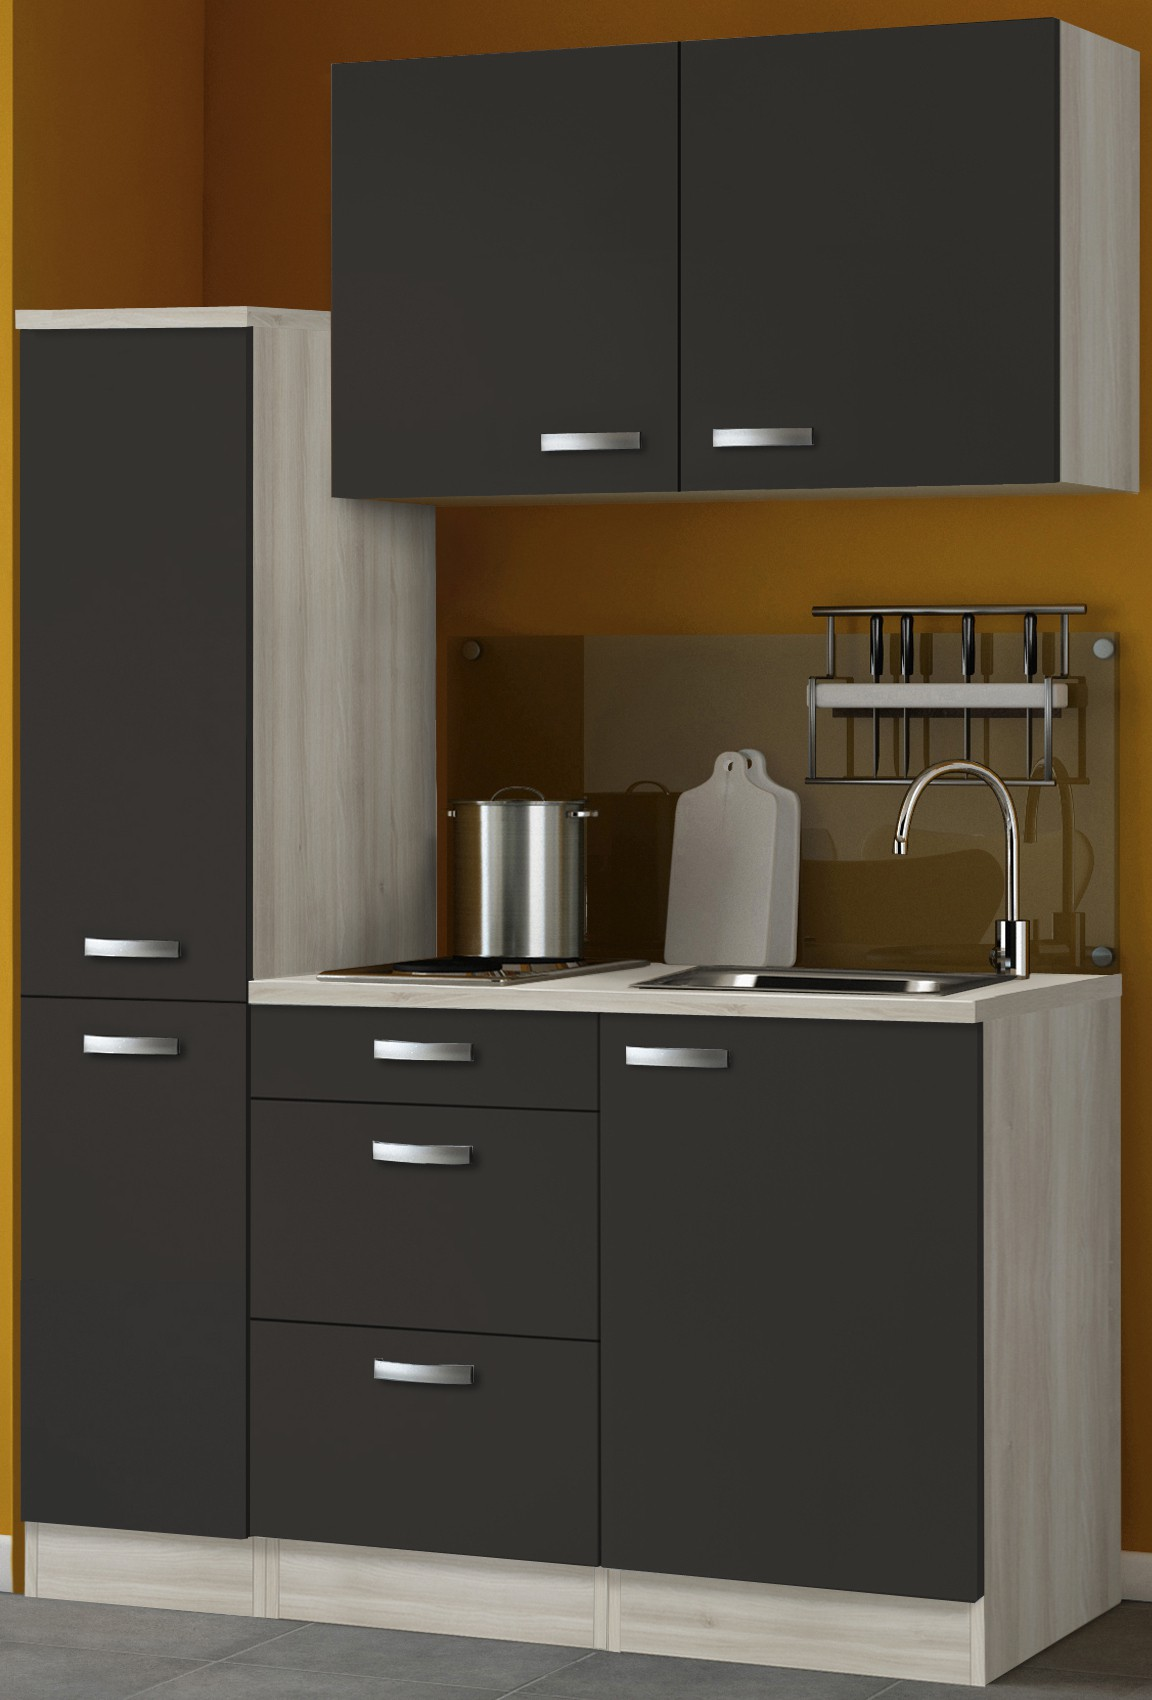 singlek che barcelona mit elektro kochfeld breite 130 cm grau k che singlek chen. Black Bedroom Furniture Sets. Home Design Ideas